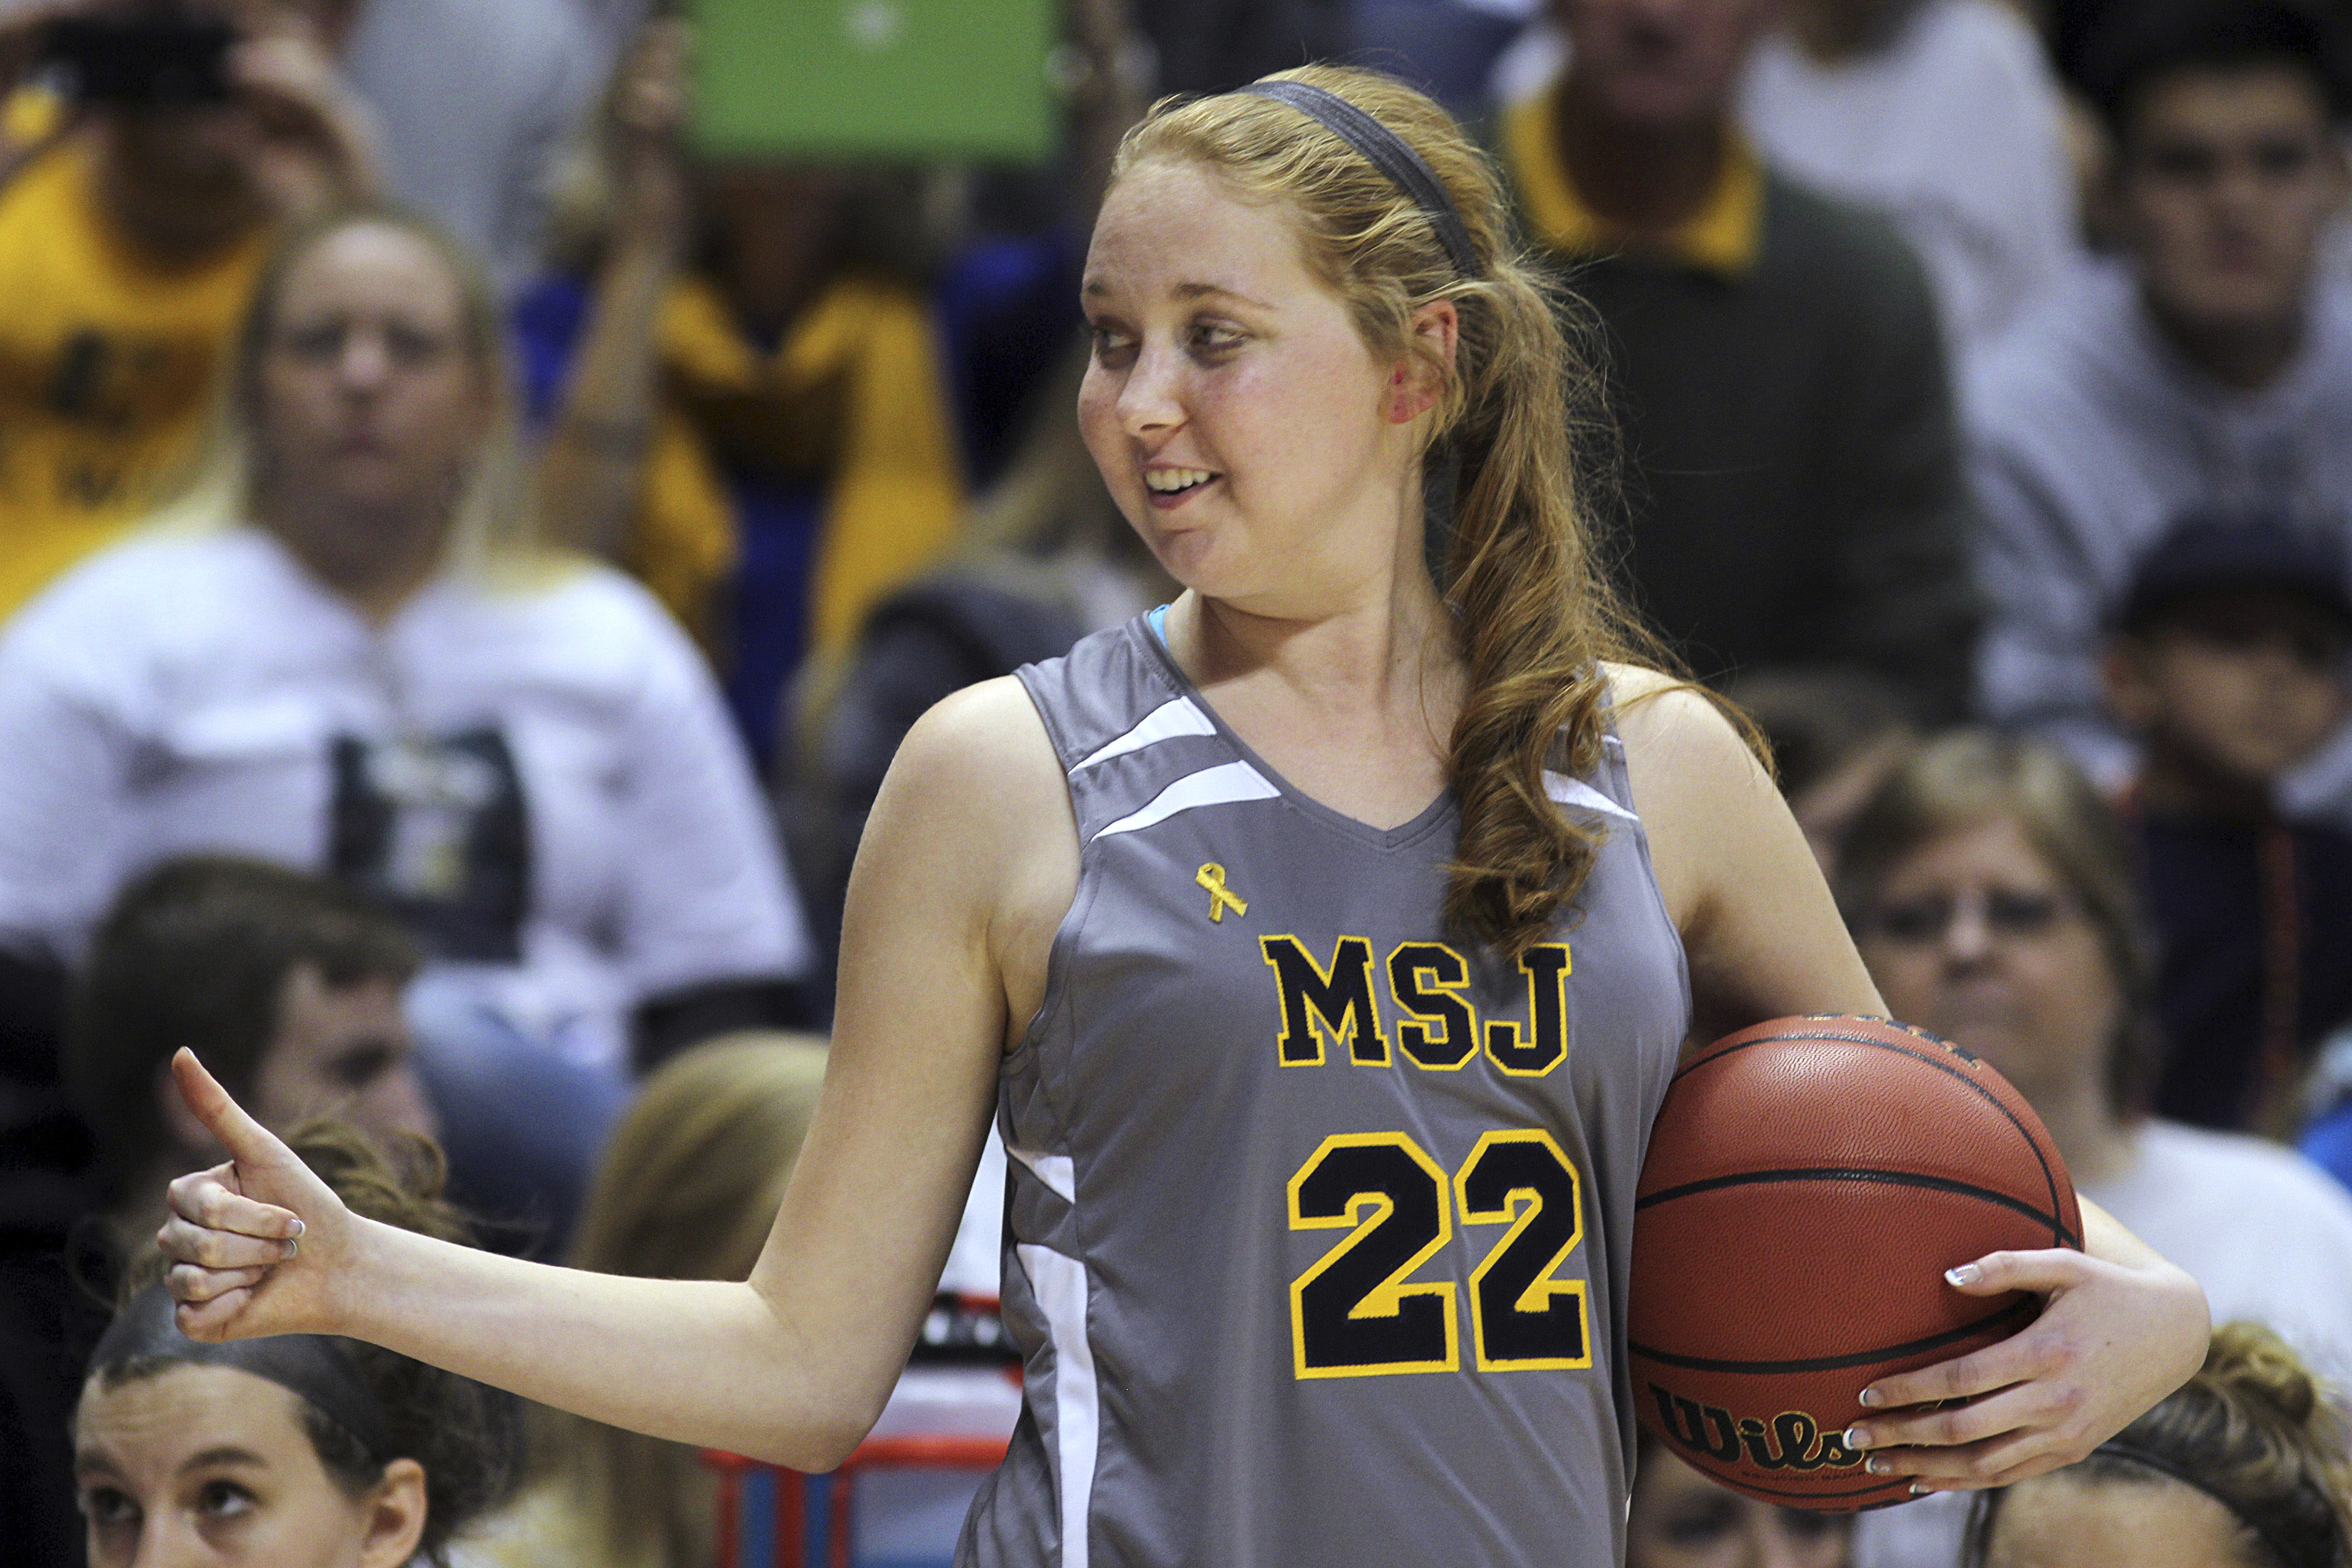 Lauren Hill gives a thumbs-up during her first NCAA college basketball game. (AP)